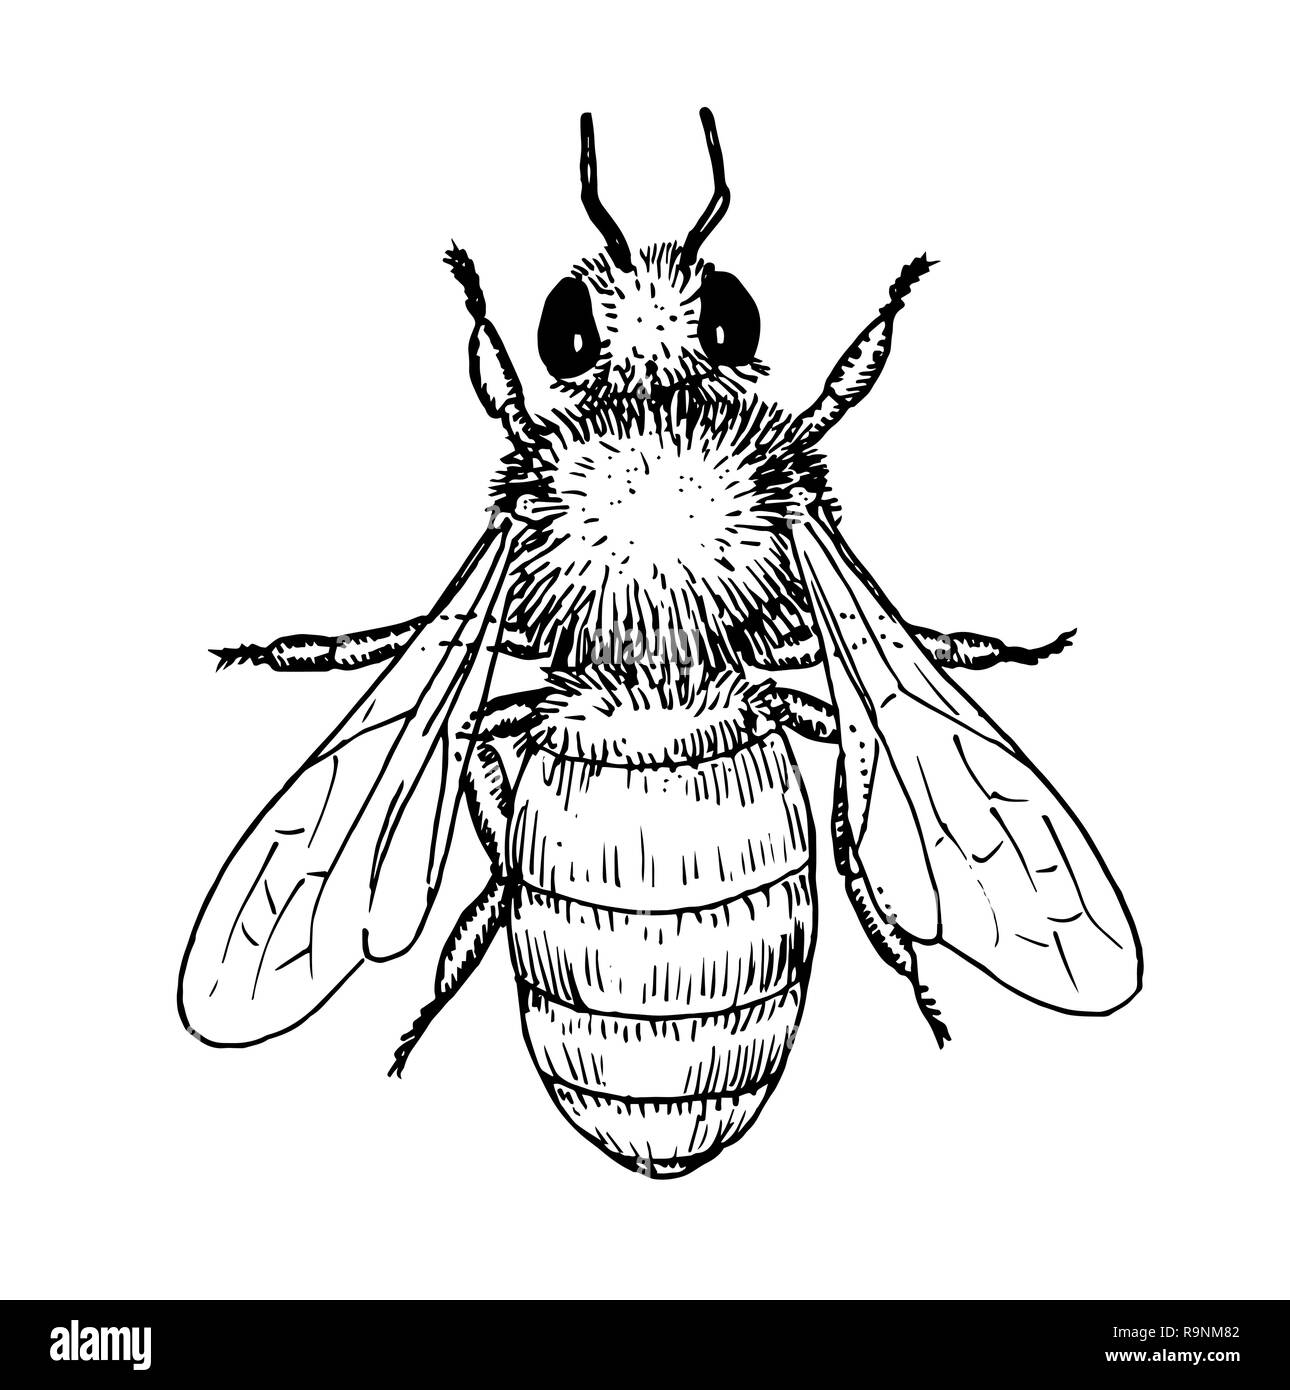 Drawing of honey bee - hand sketch of insect, black and white illustration - Stock Image